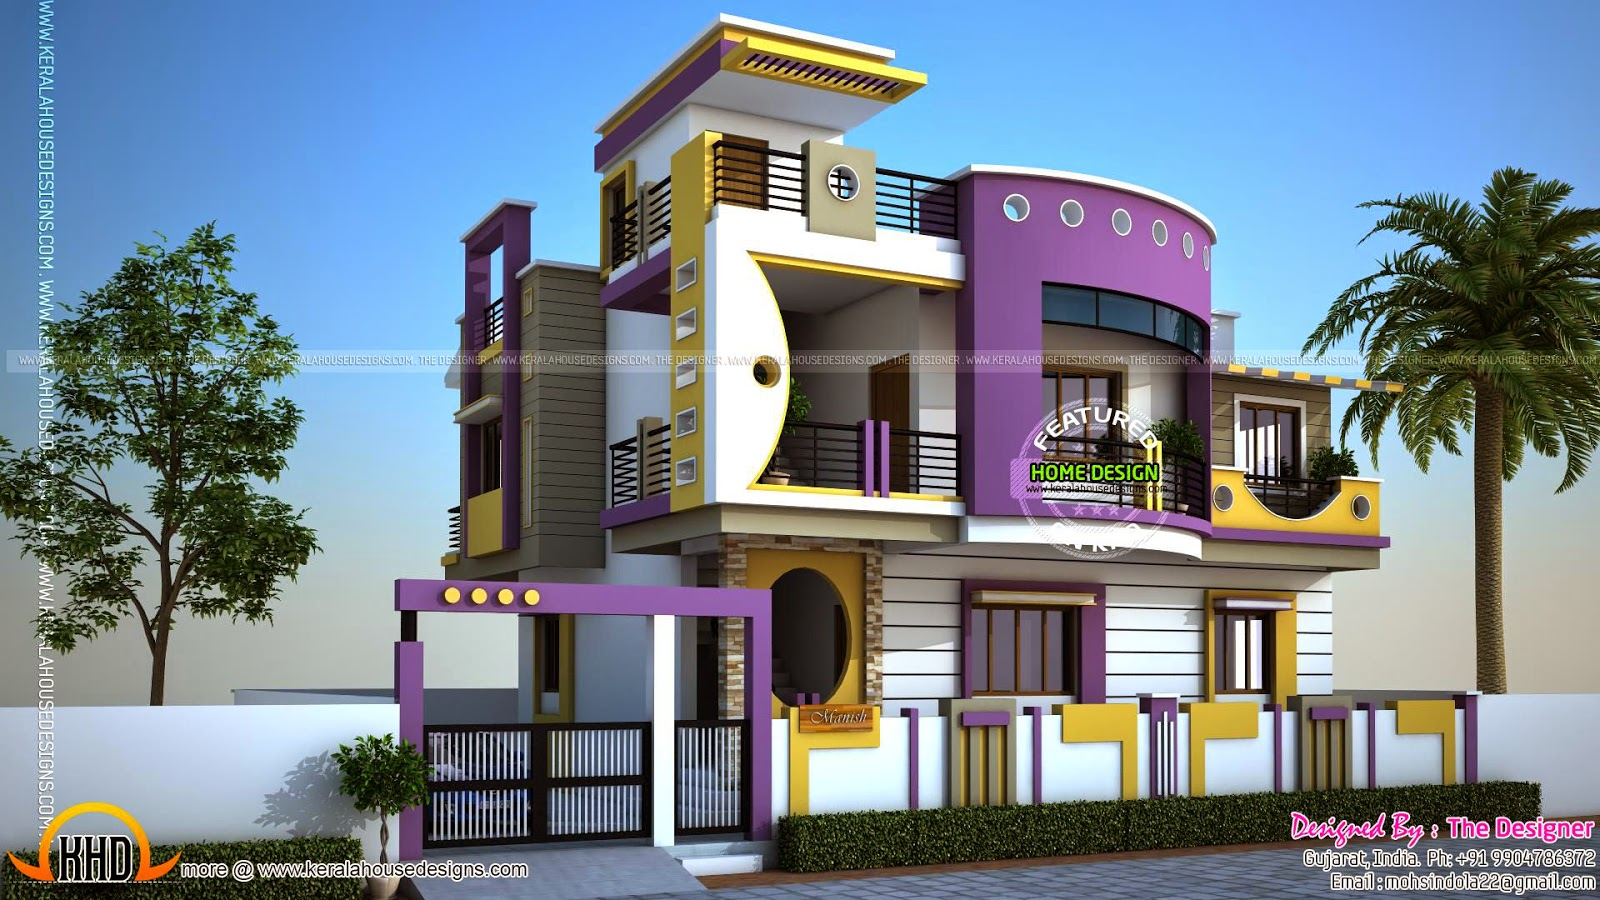 House exterior designs in contemporary style kerala home for Home exterior design india